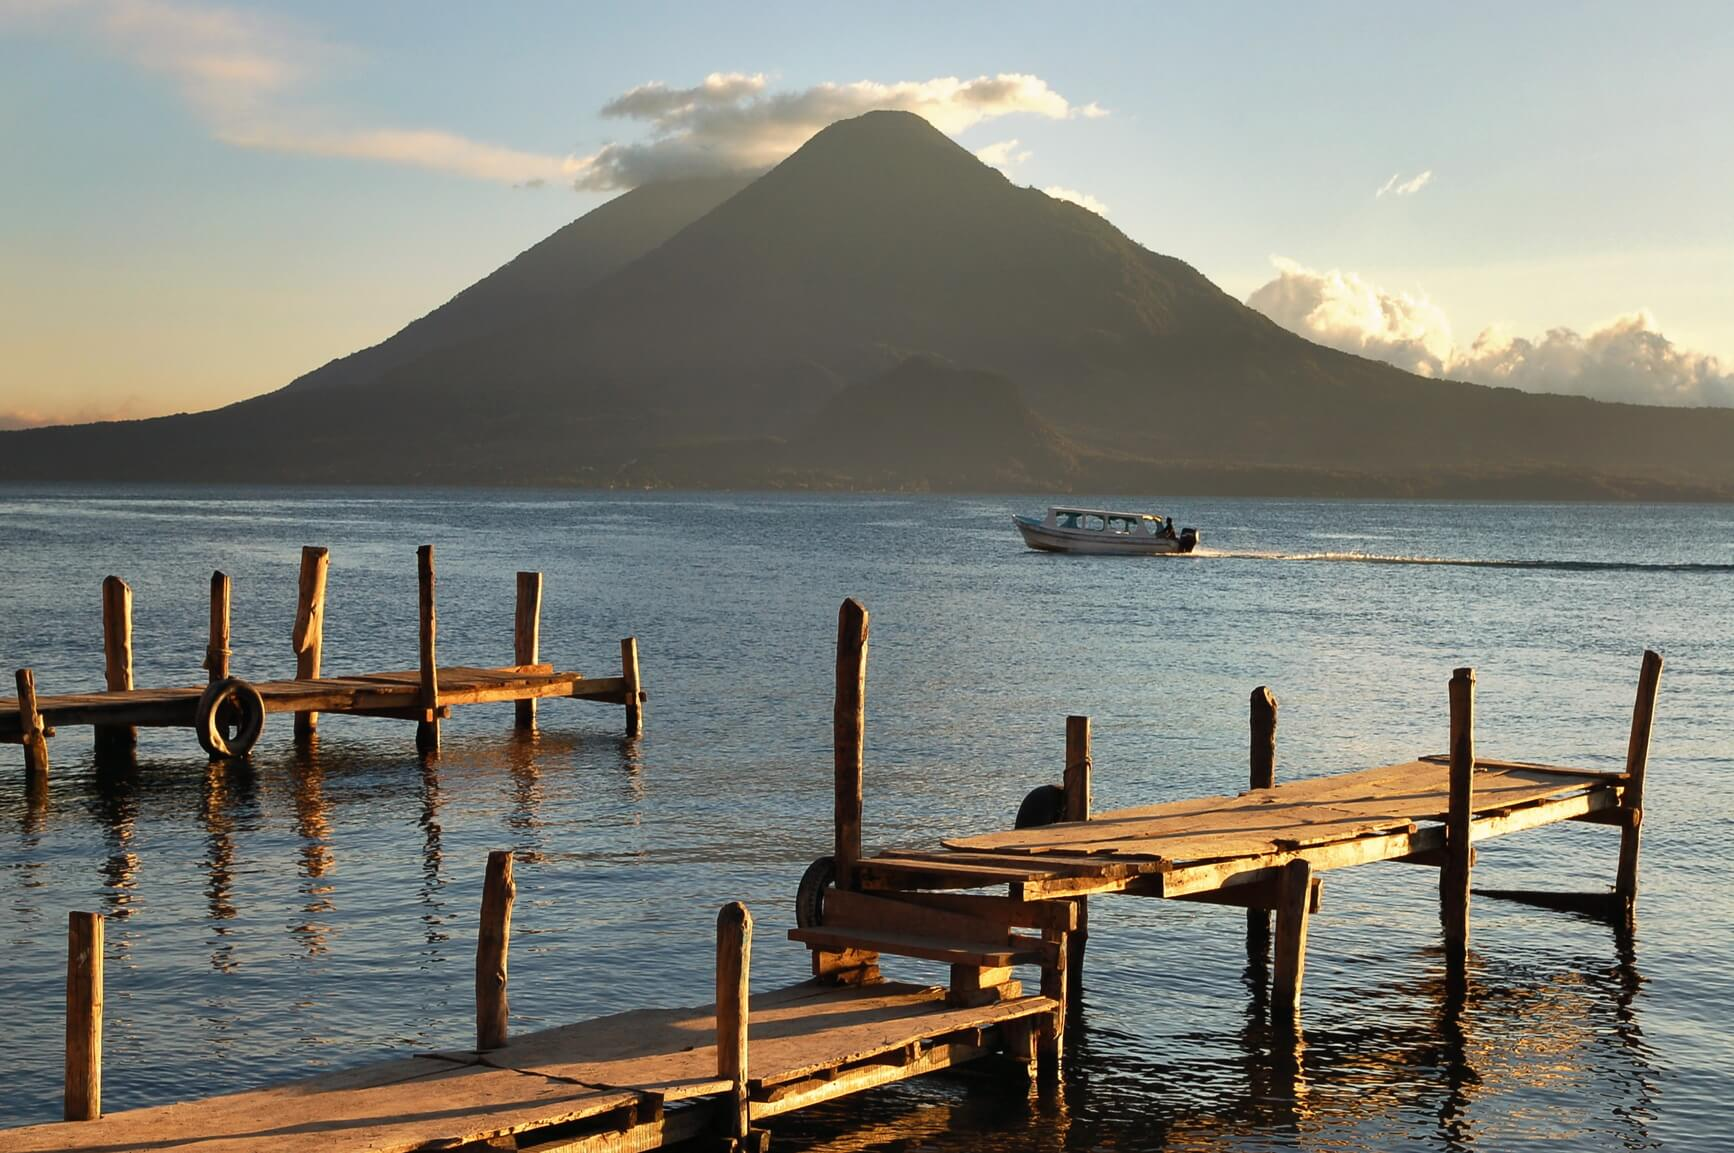 Houston, Texas to Guatemala for only $136 roundtrip